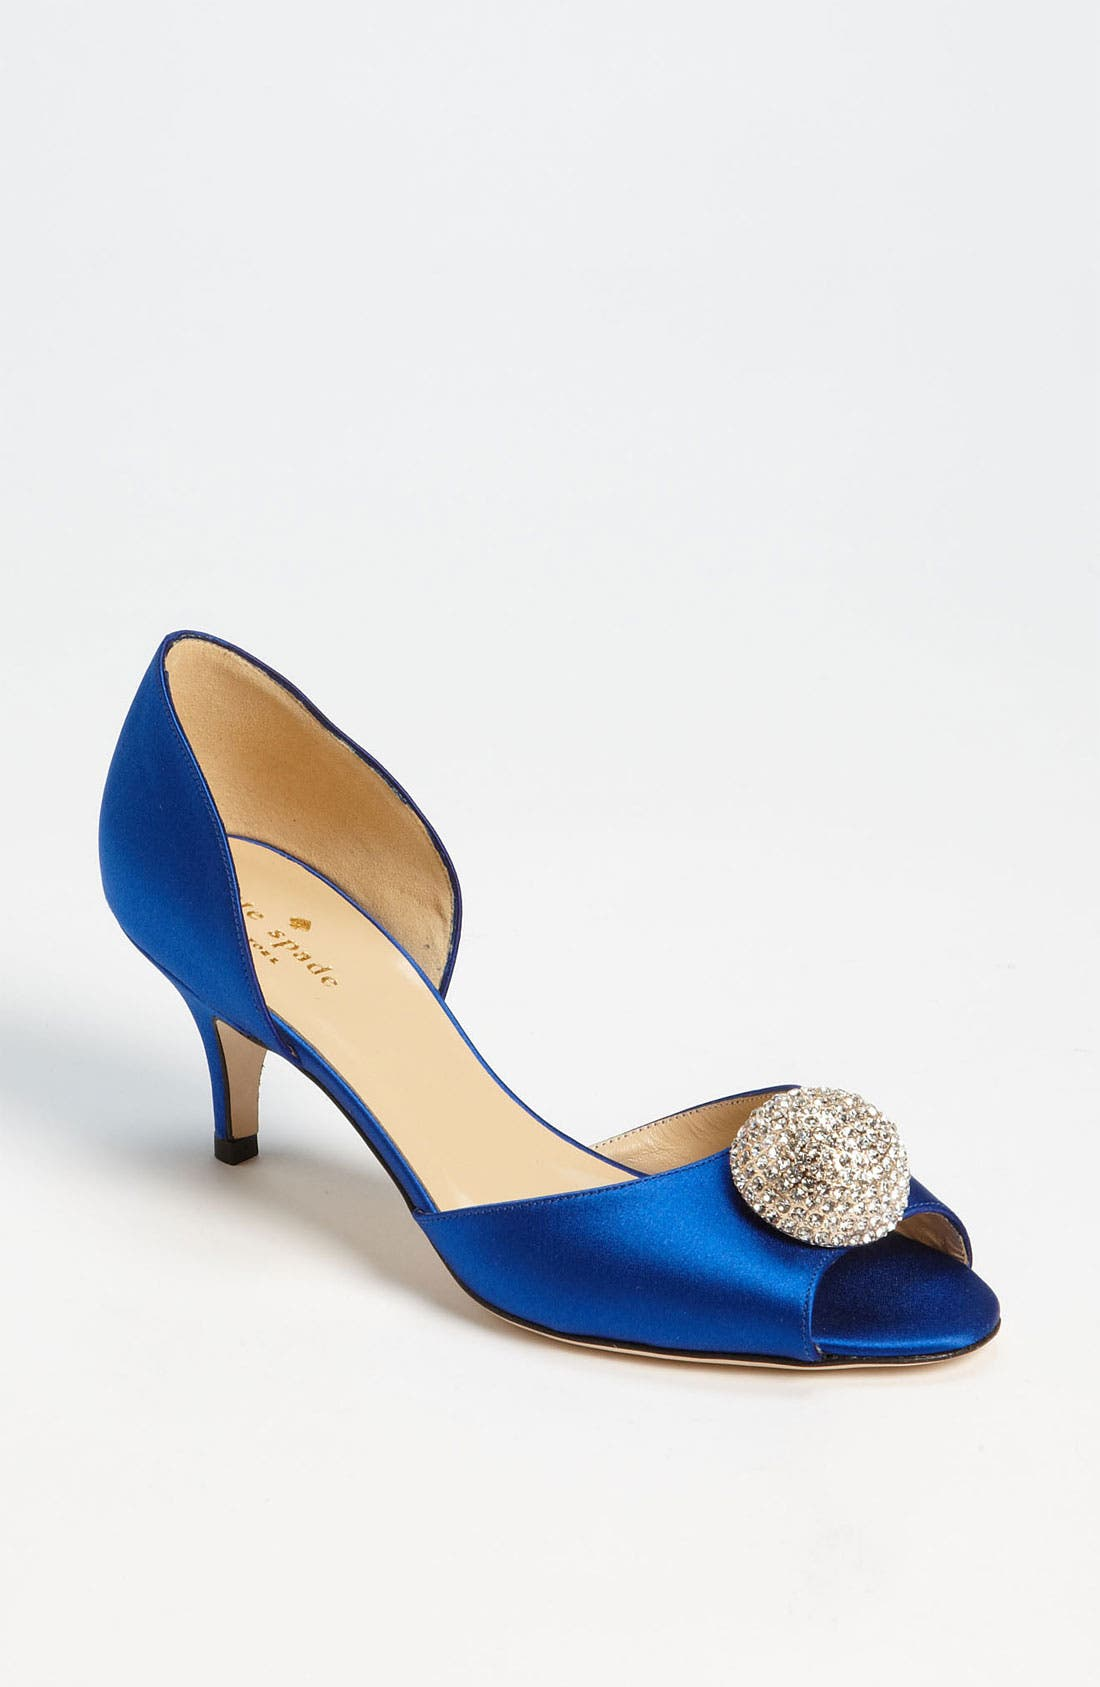 Alternate Image 1 Selected - kate spade new york 'stimson' pump